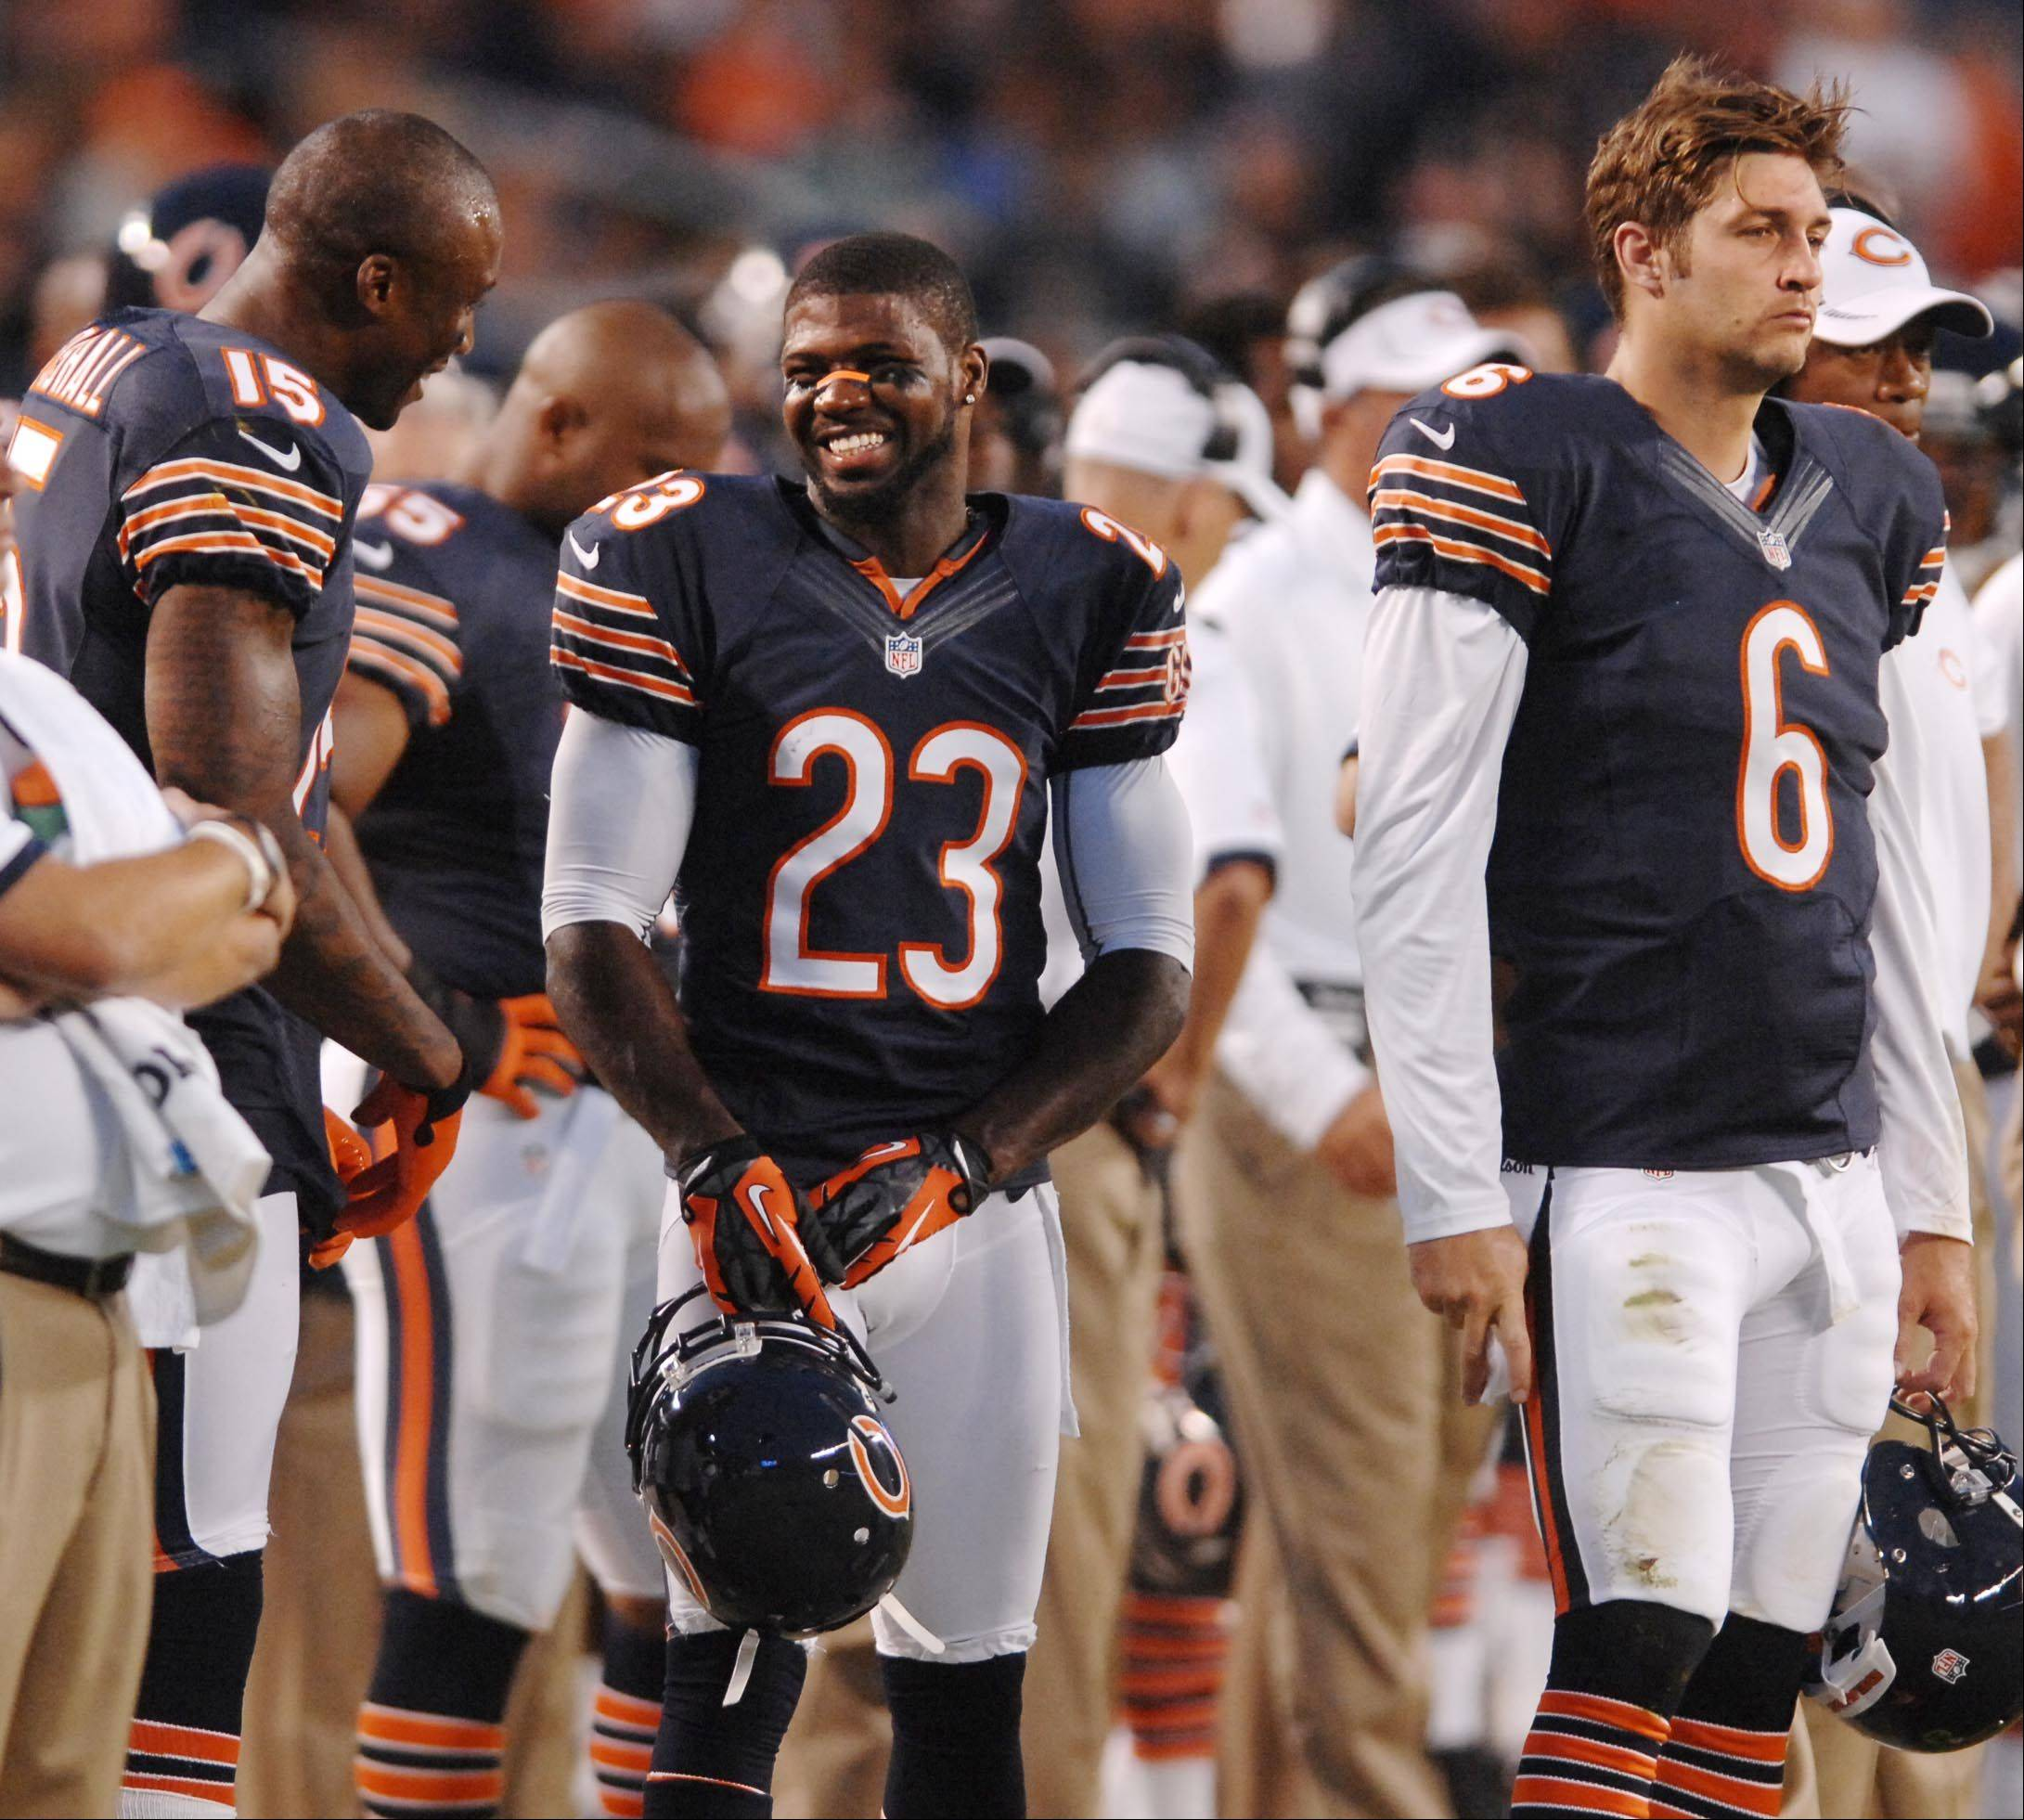 Devin Hester smiles with Brandon Marshal, left, and Jay Cutler, right, against the Washington Redskins in the second preseason game at Soldier Field in Chicago.